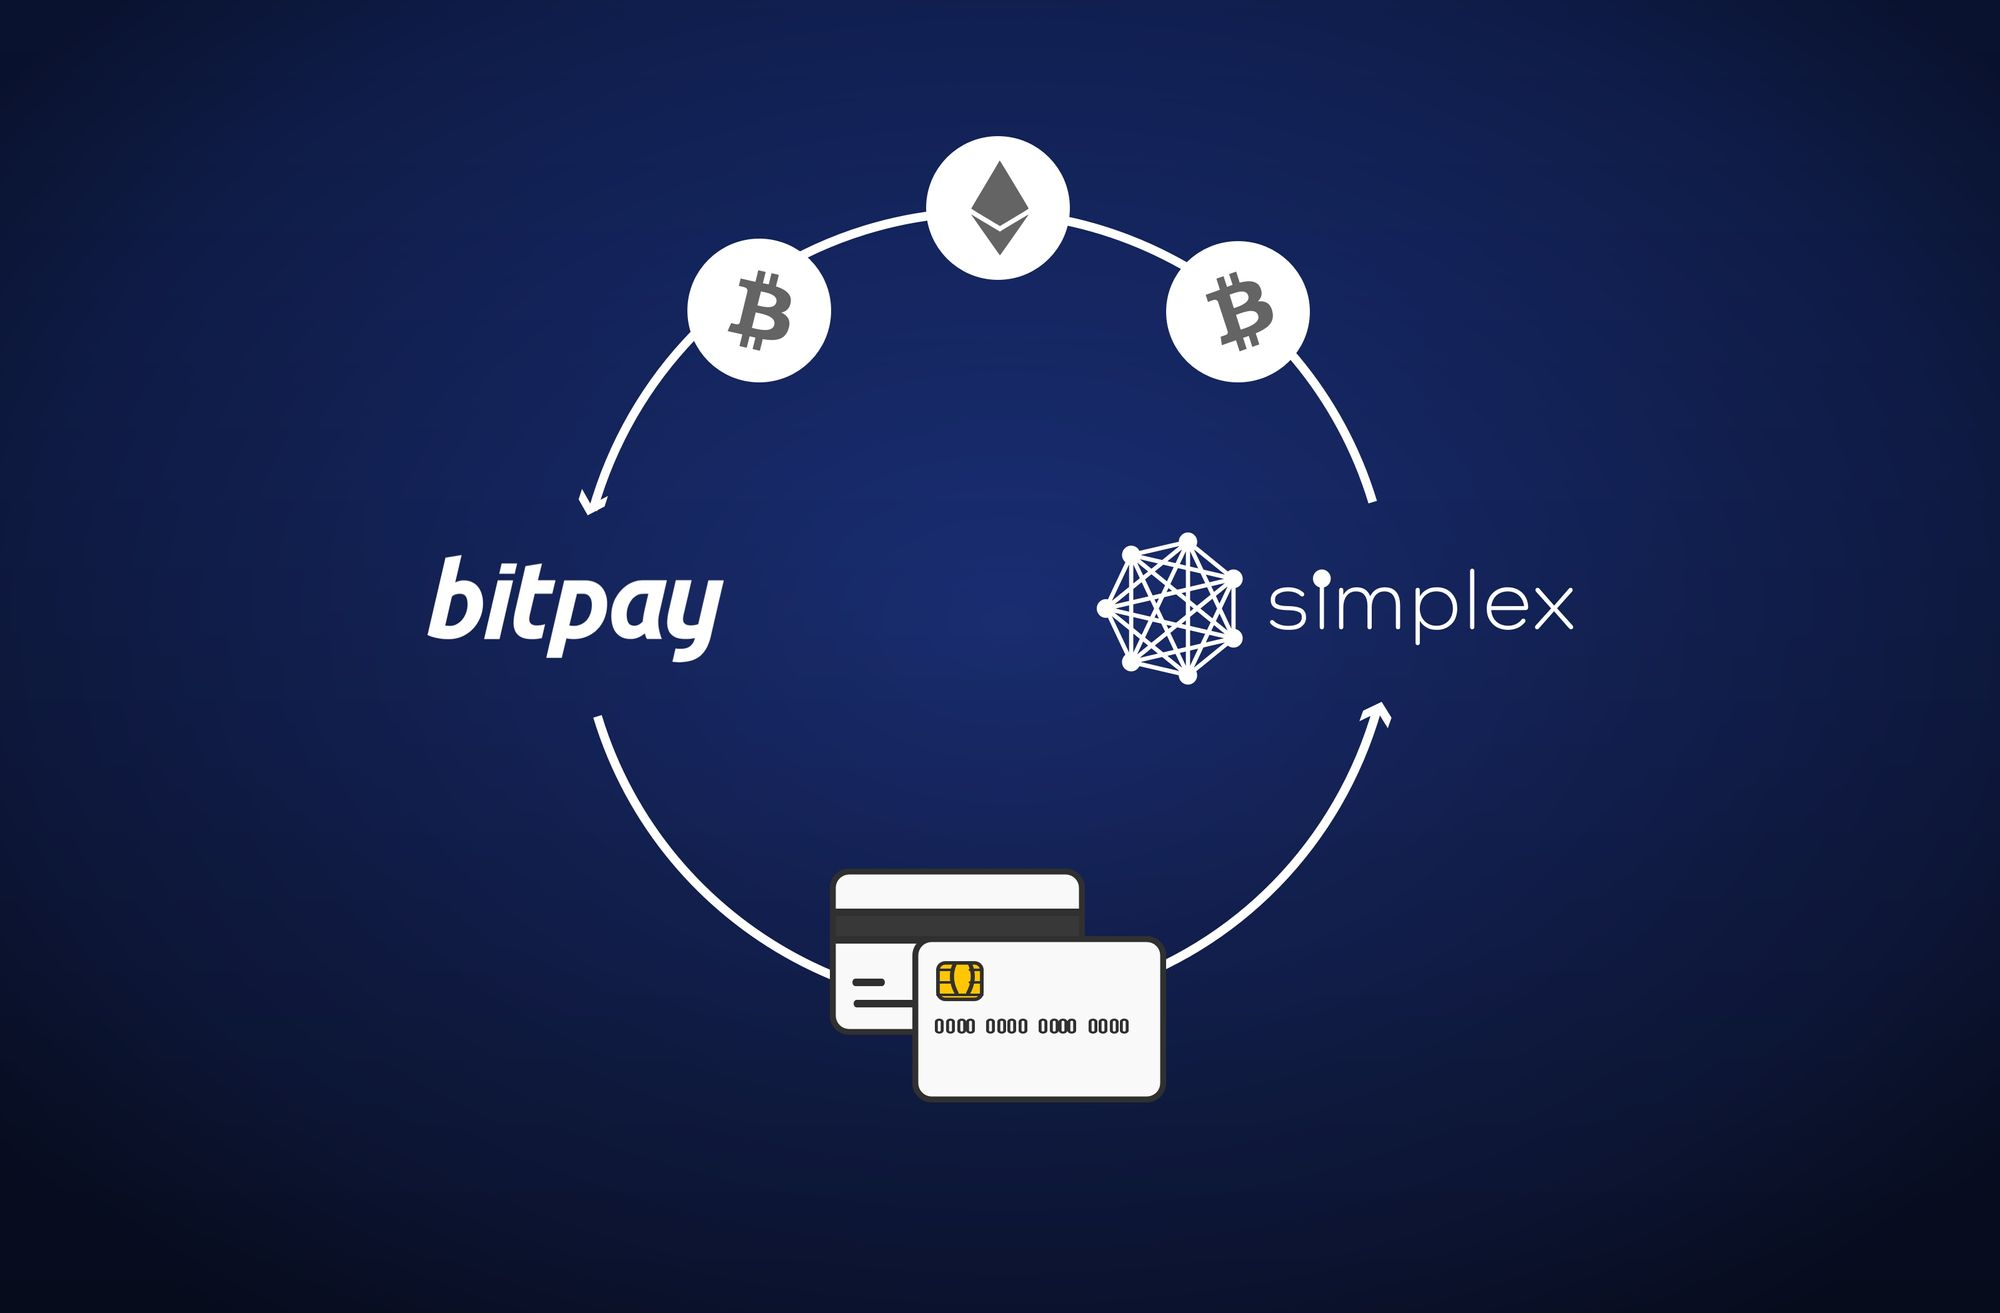 Buy Bitcoin in the BitPay App